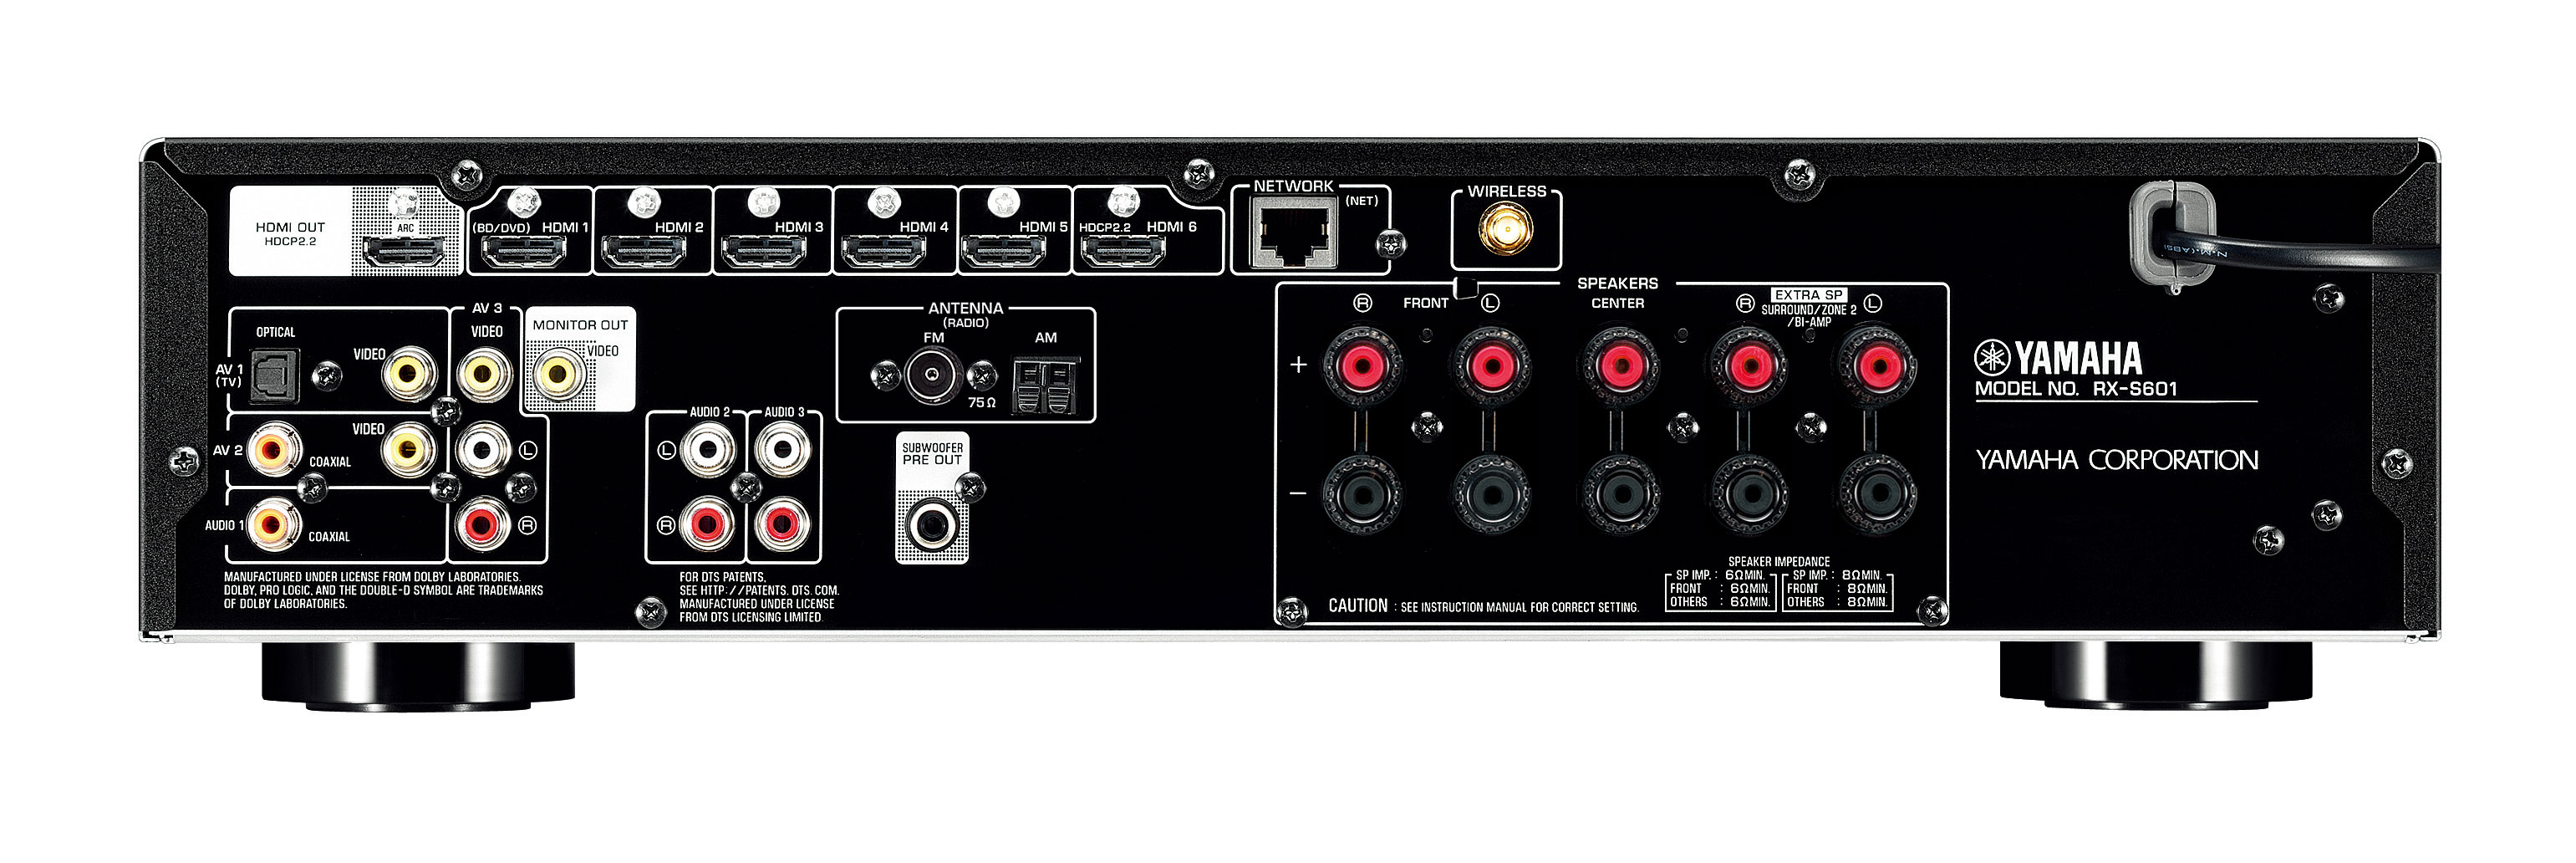 Yamaha Receiver Arc Support